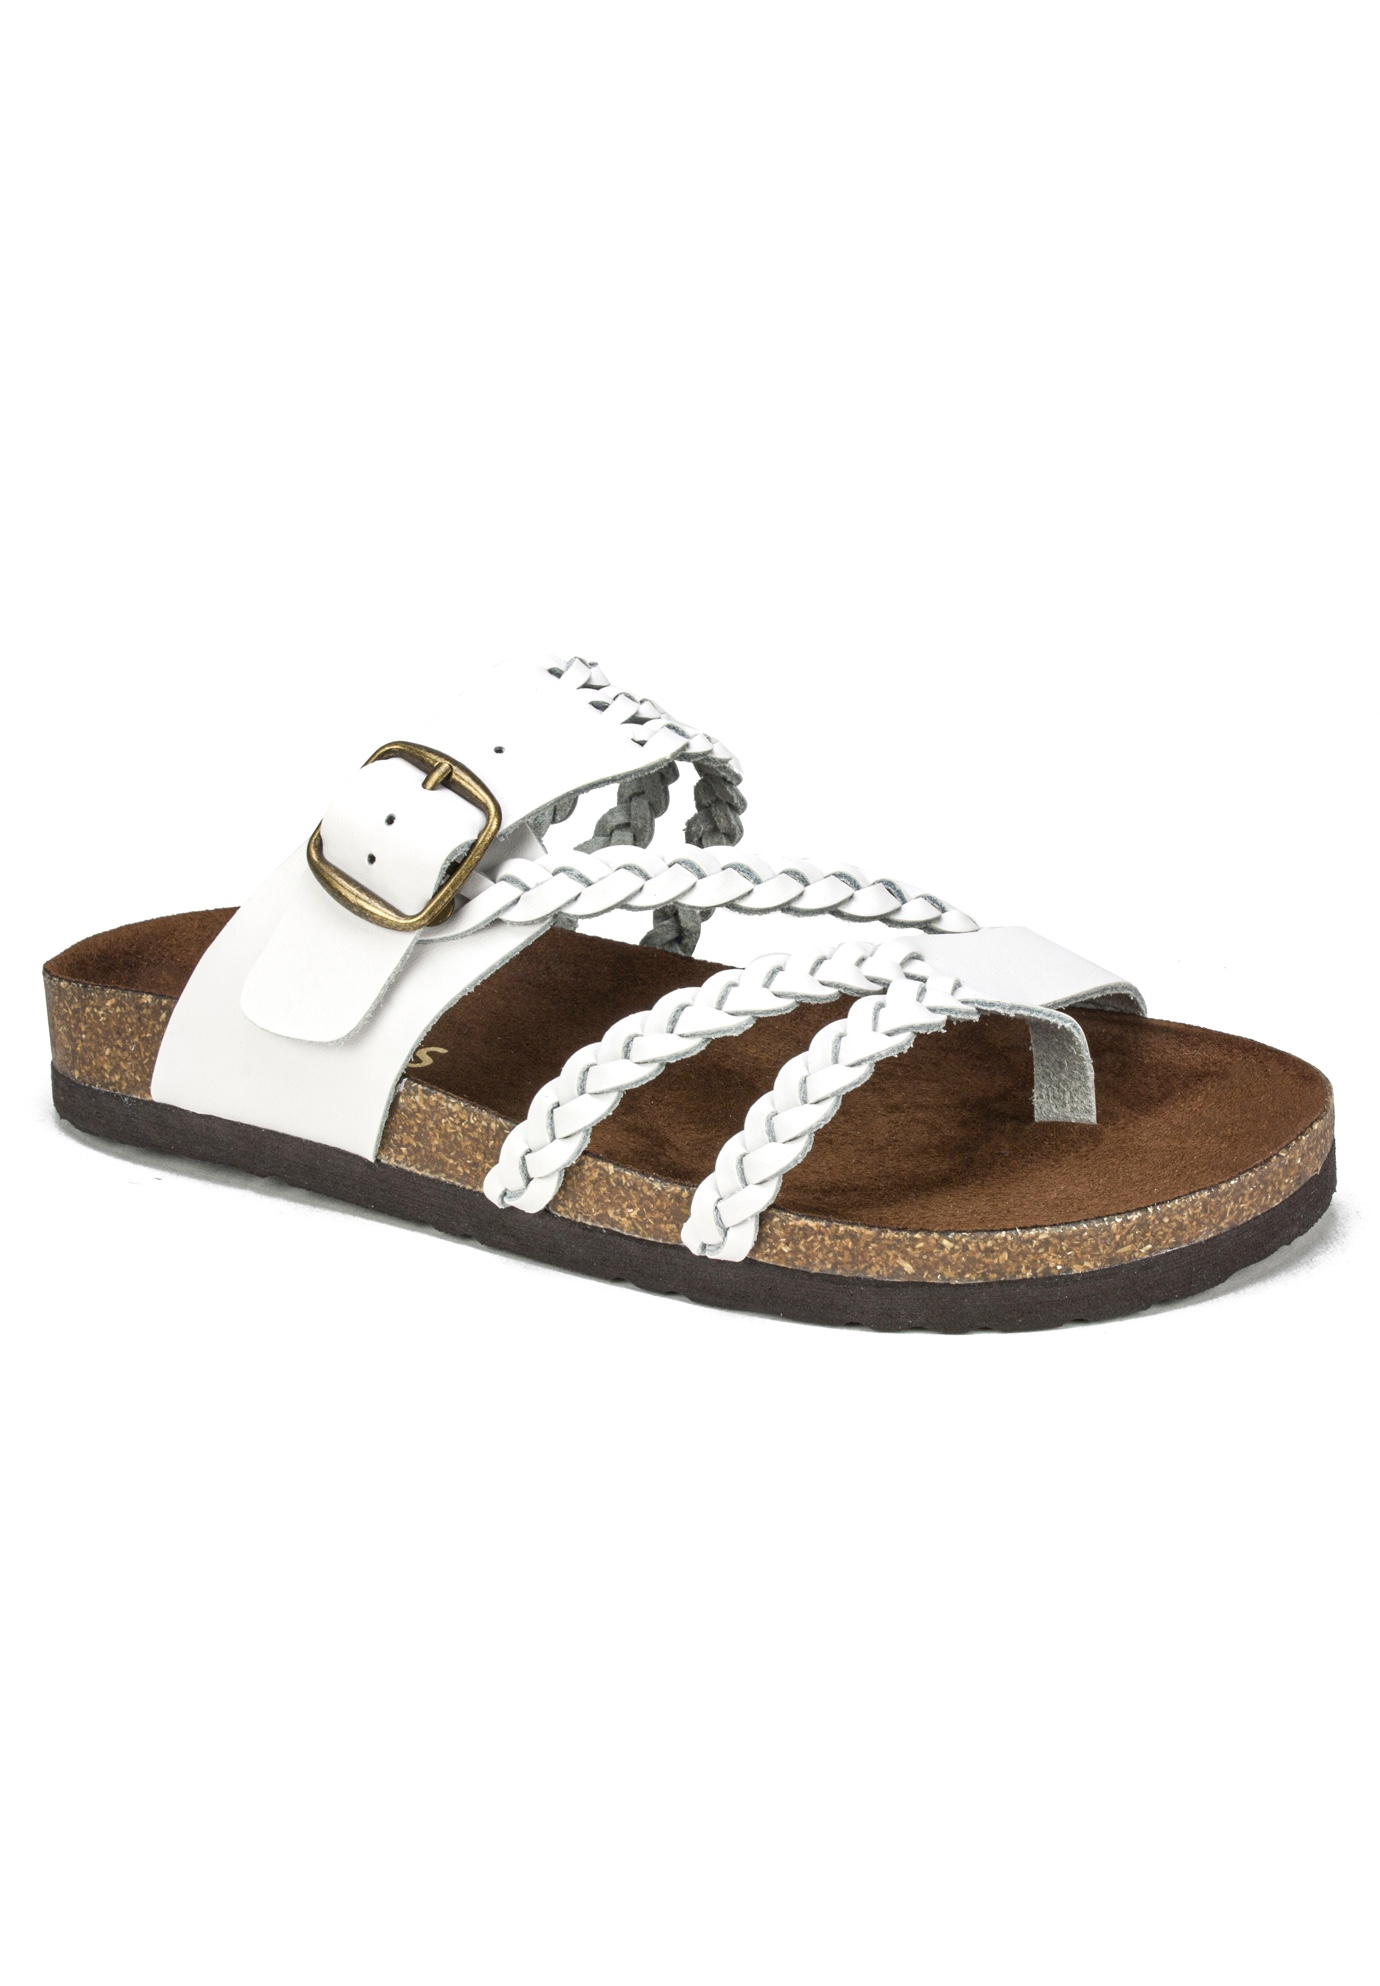 Hayleigh Sandal by White Mountain,